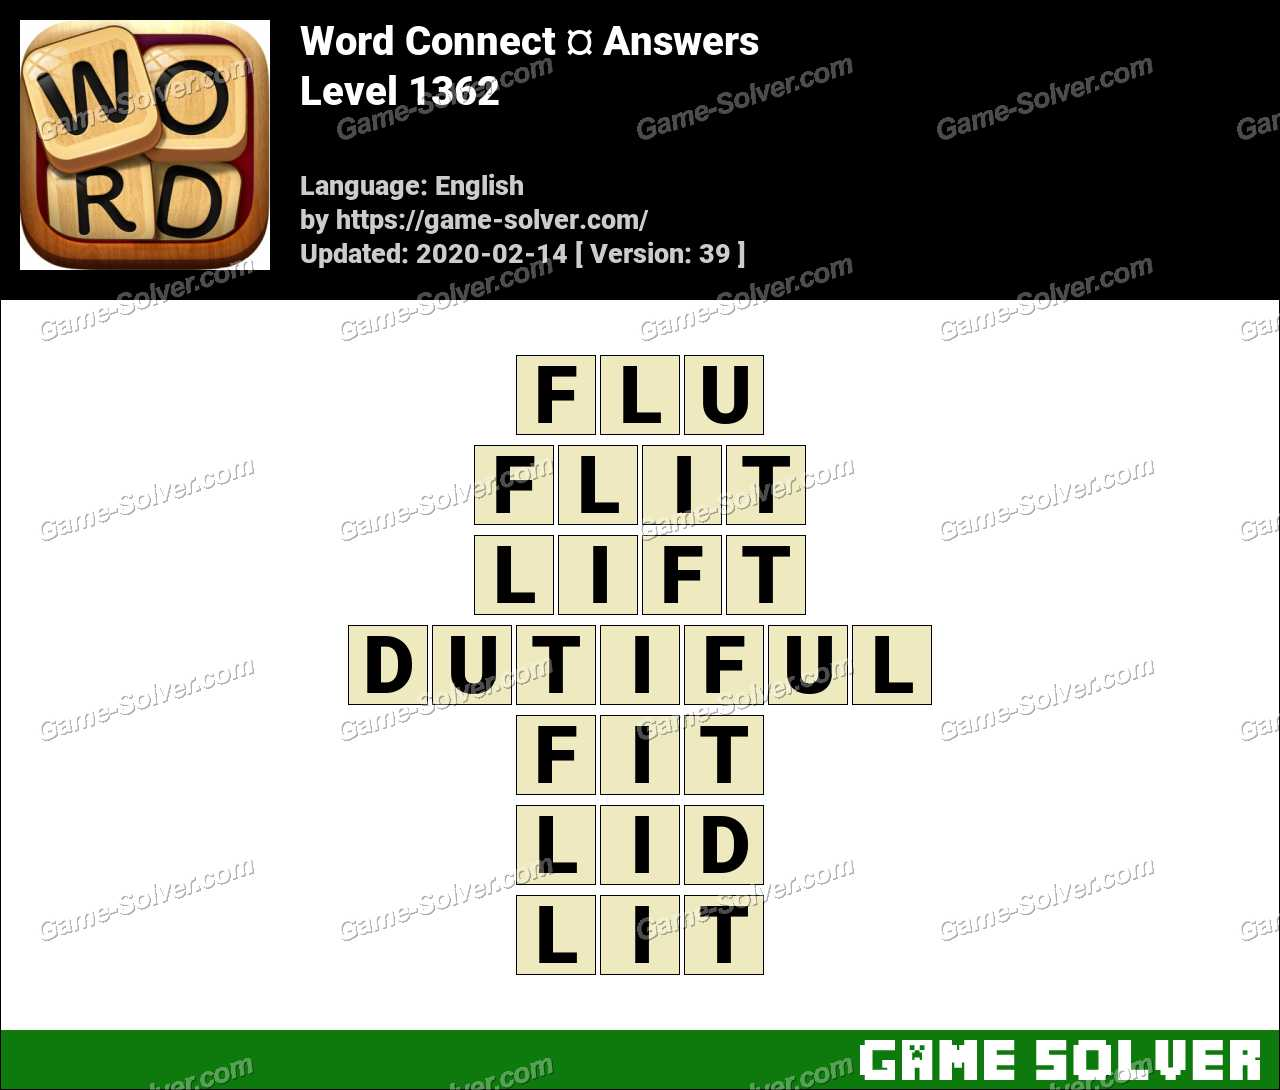 Word Connect Level 1362 Answers